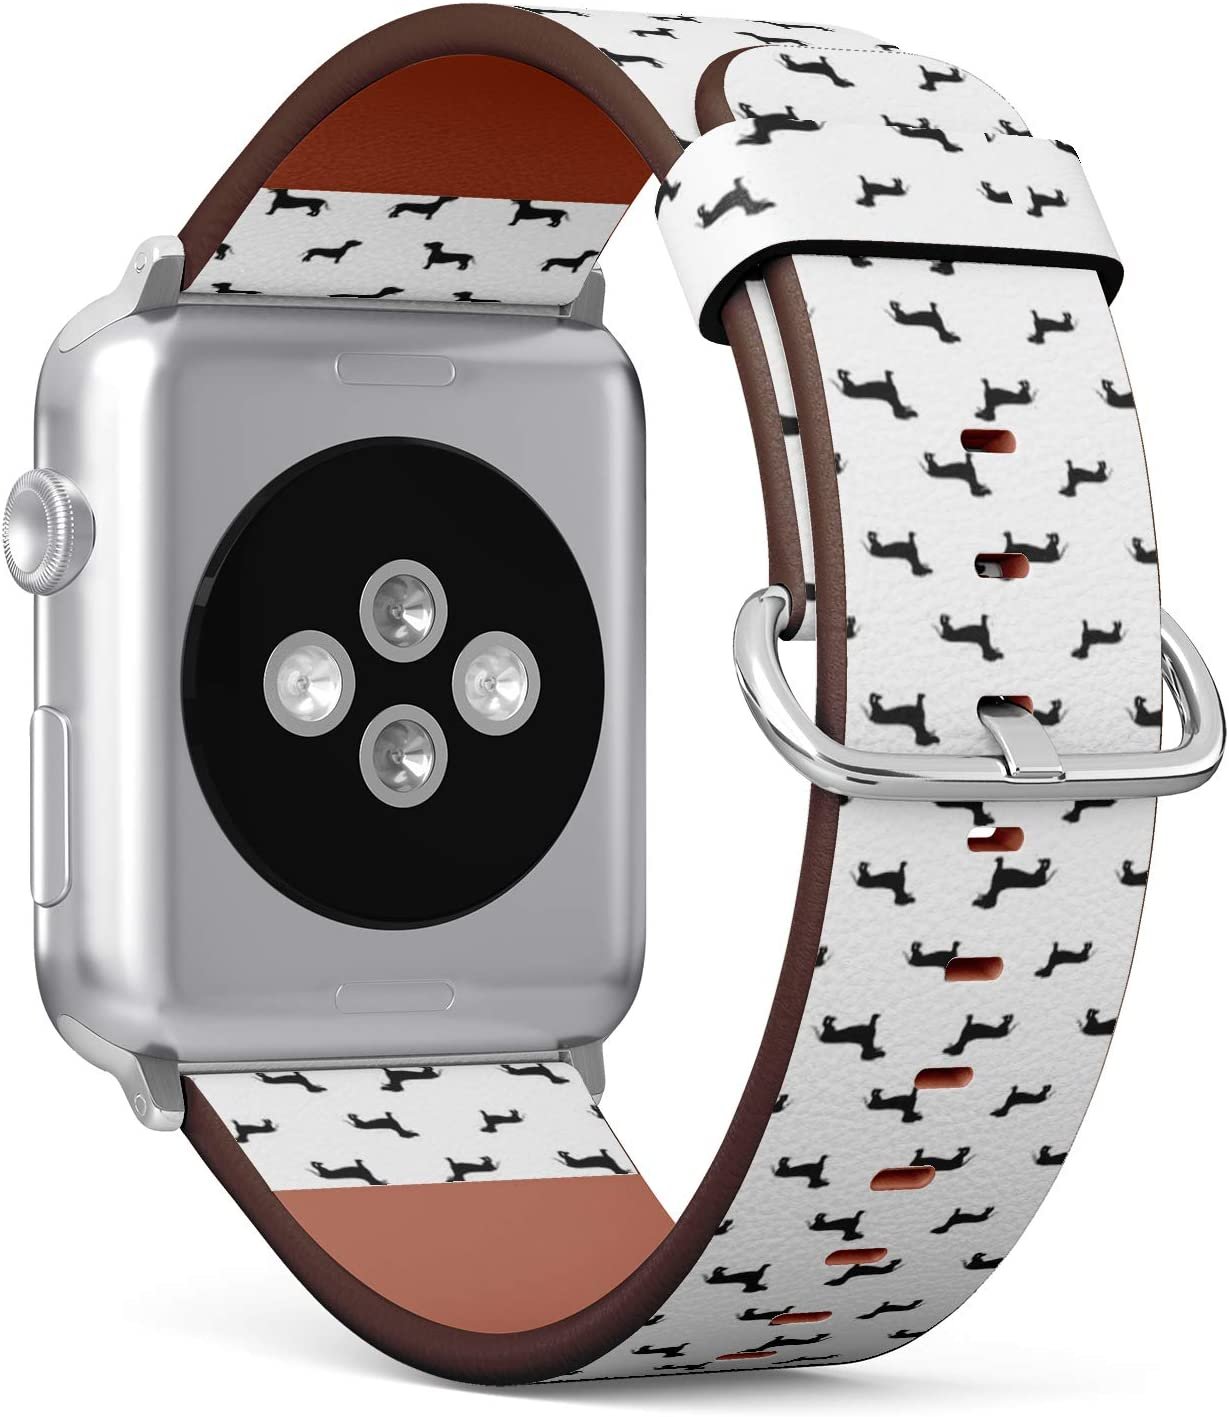 Compatible with Apple Watch (Small 38mm/40mm) Series 1,2,3,4 - Leather Band Bracelet Strap Wristband Replacement - Dachshund Dog